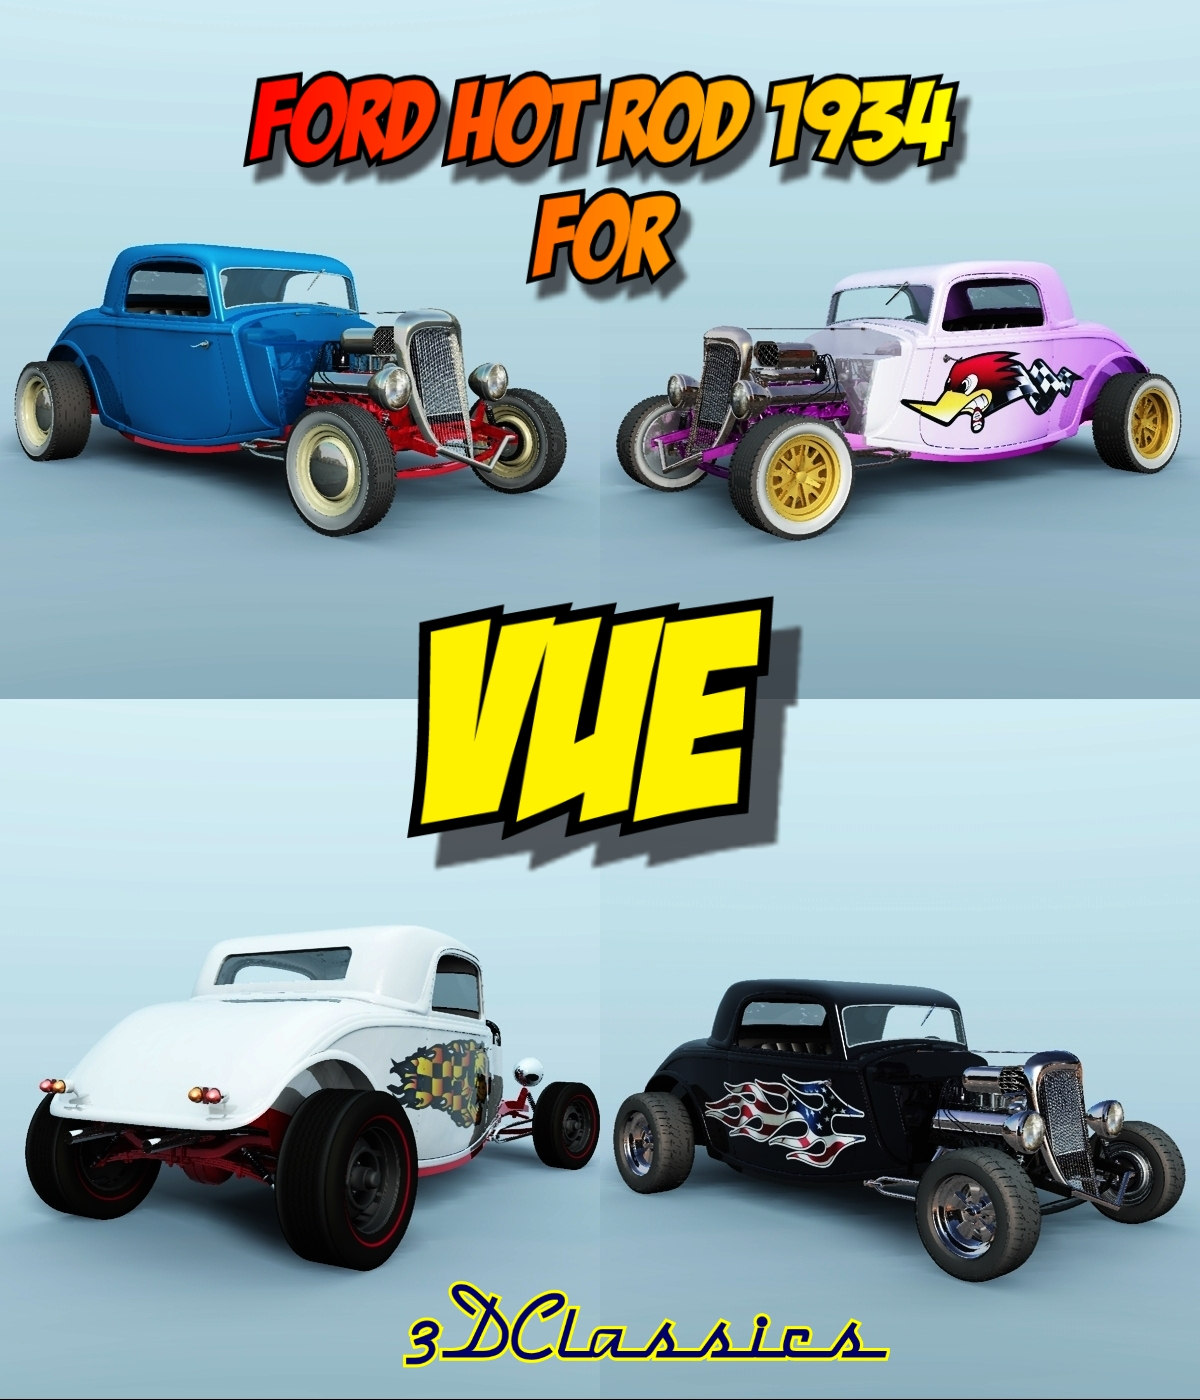 FORD HOT ROD 1934 for VUE